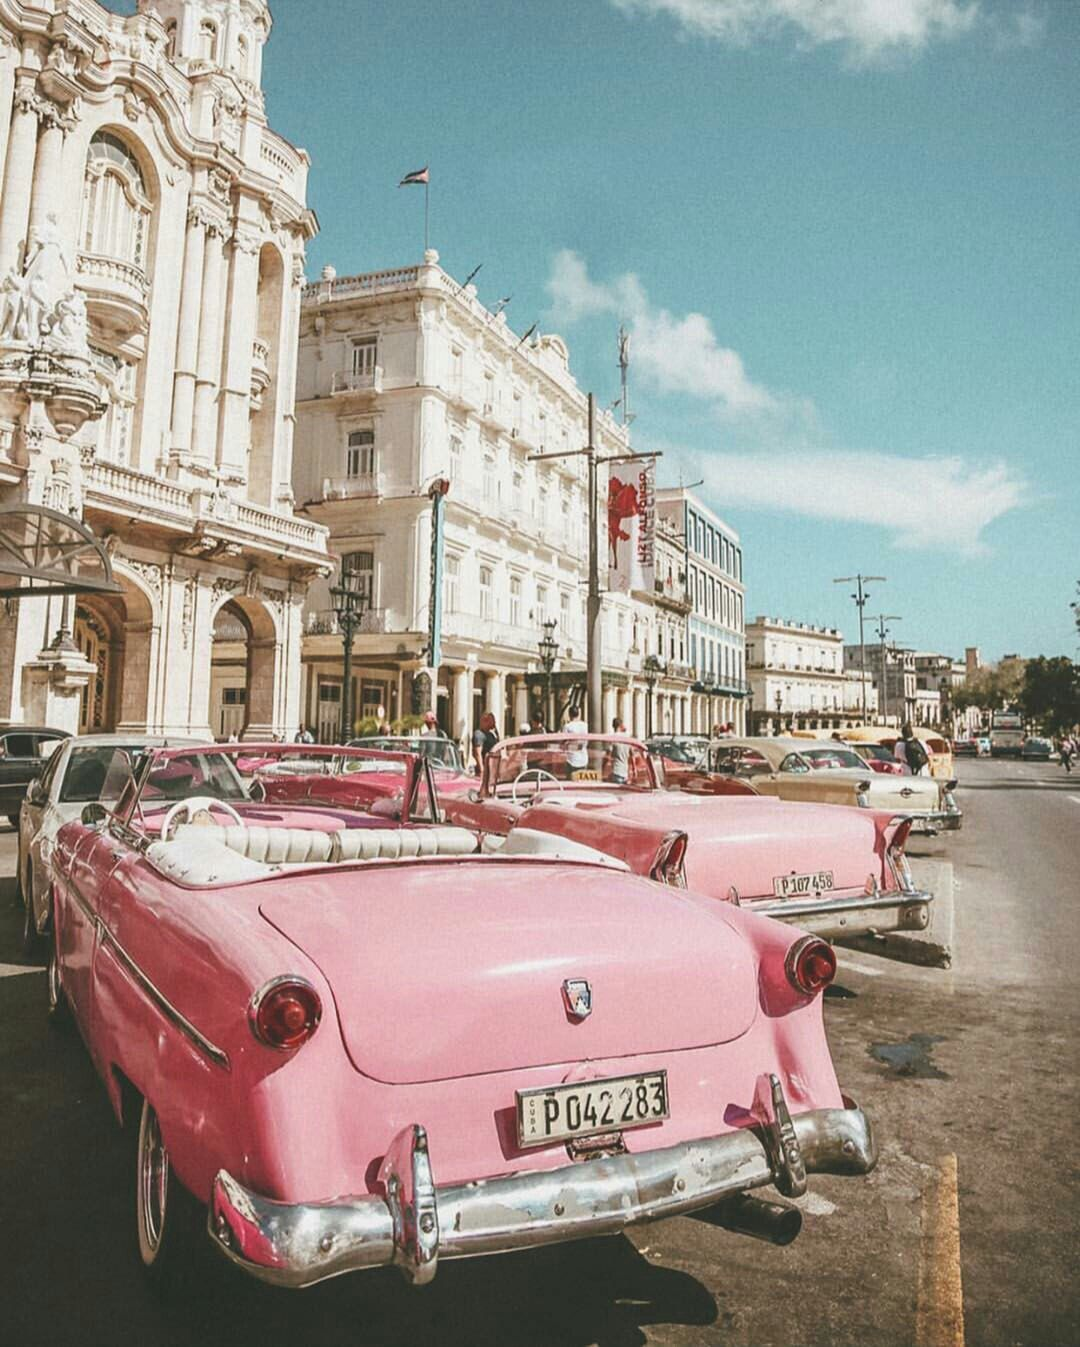 Pin by iSLE of TAM on Cute Cars | Aesthetic vintage, Retro ...